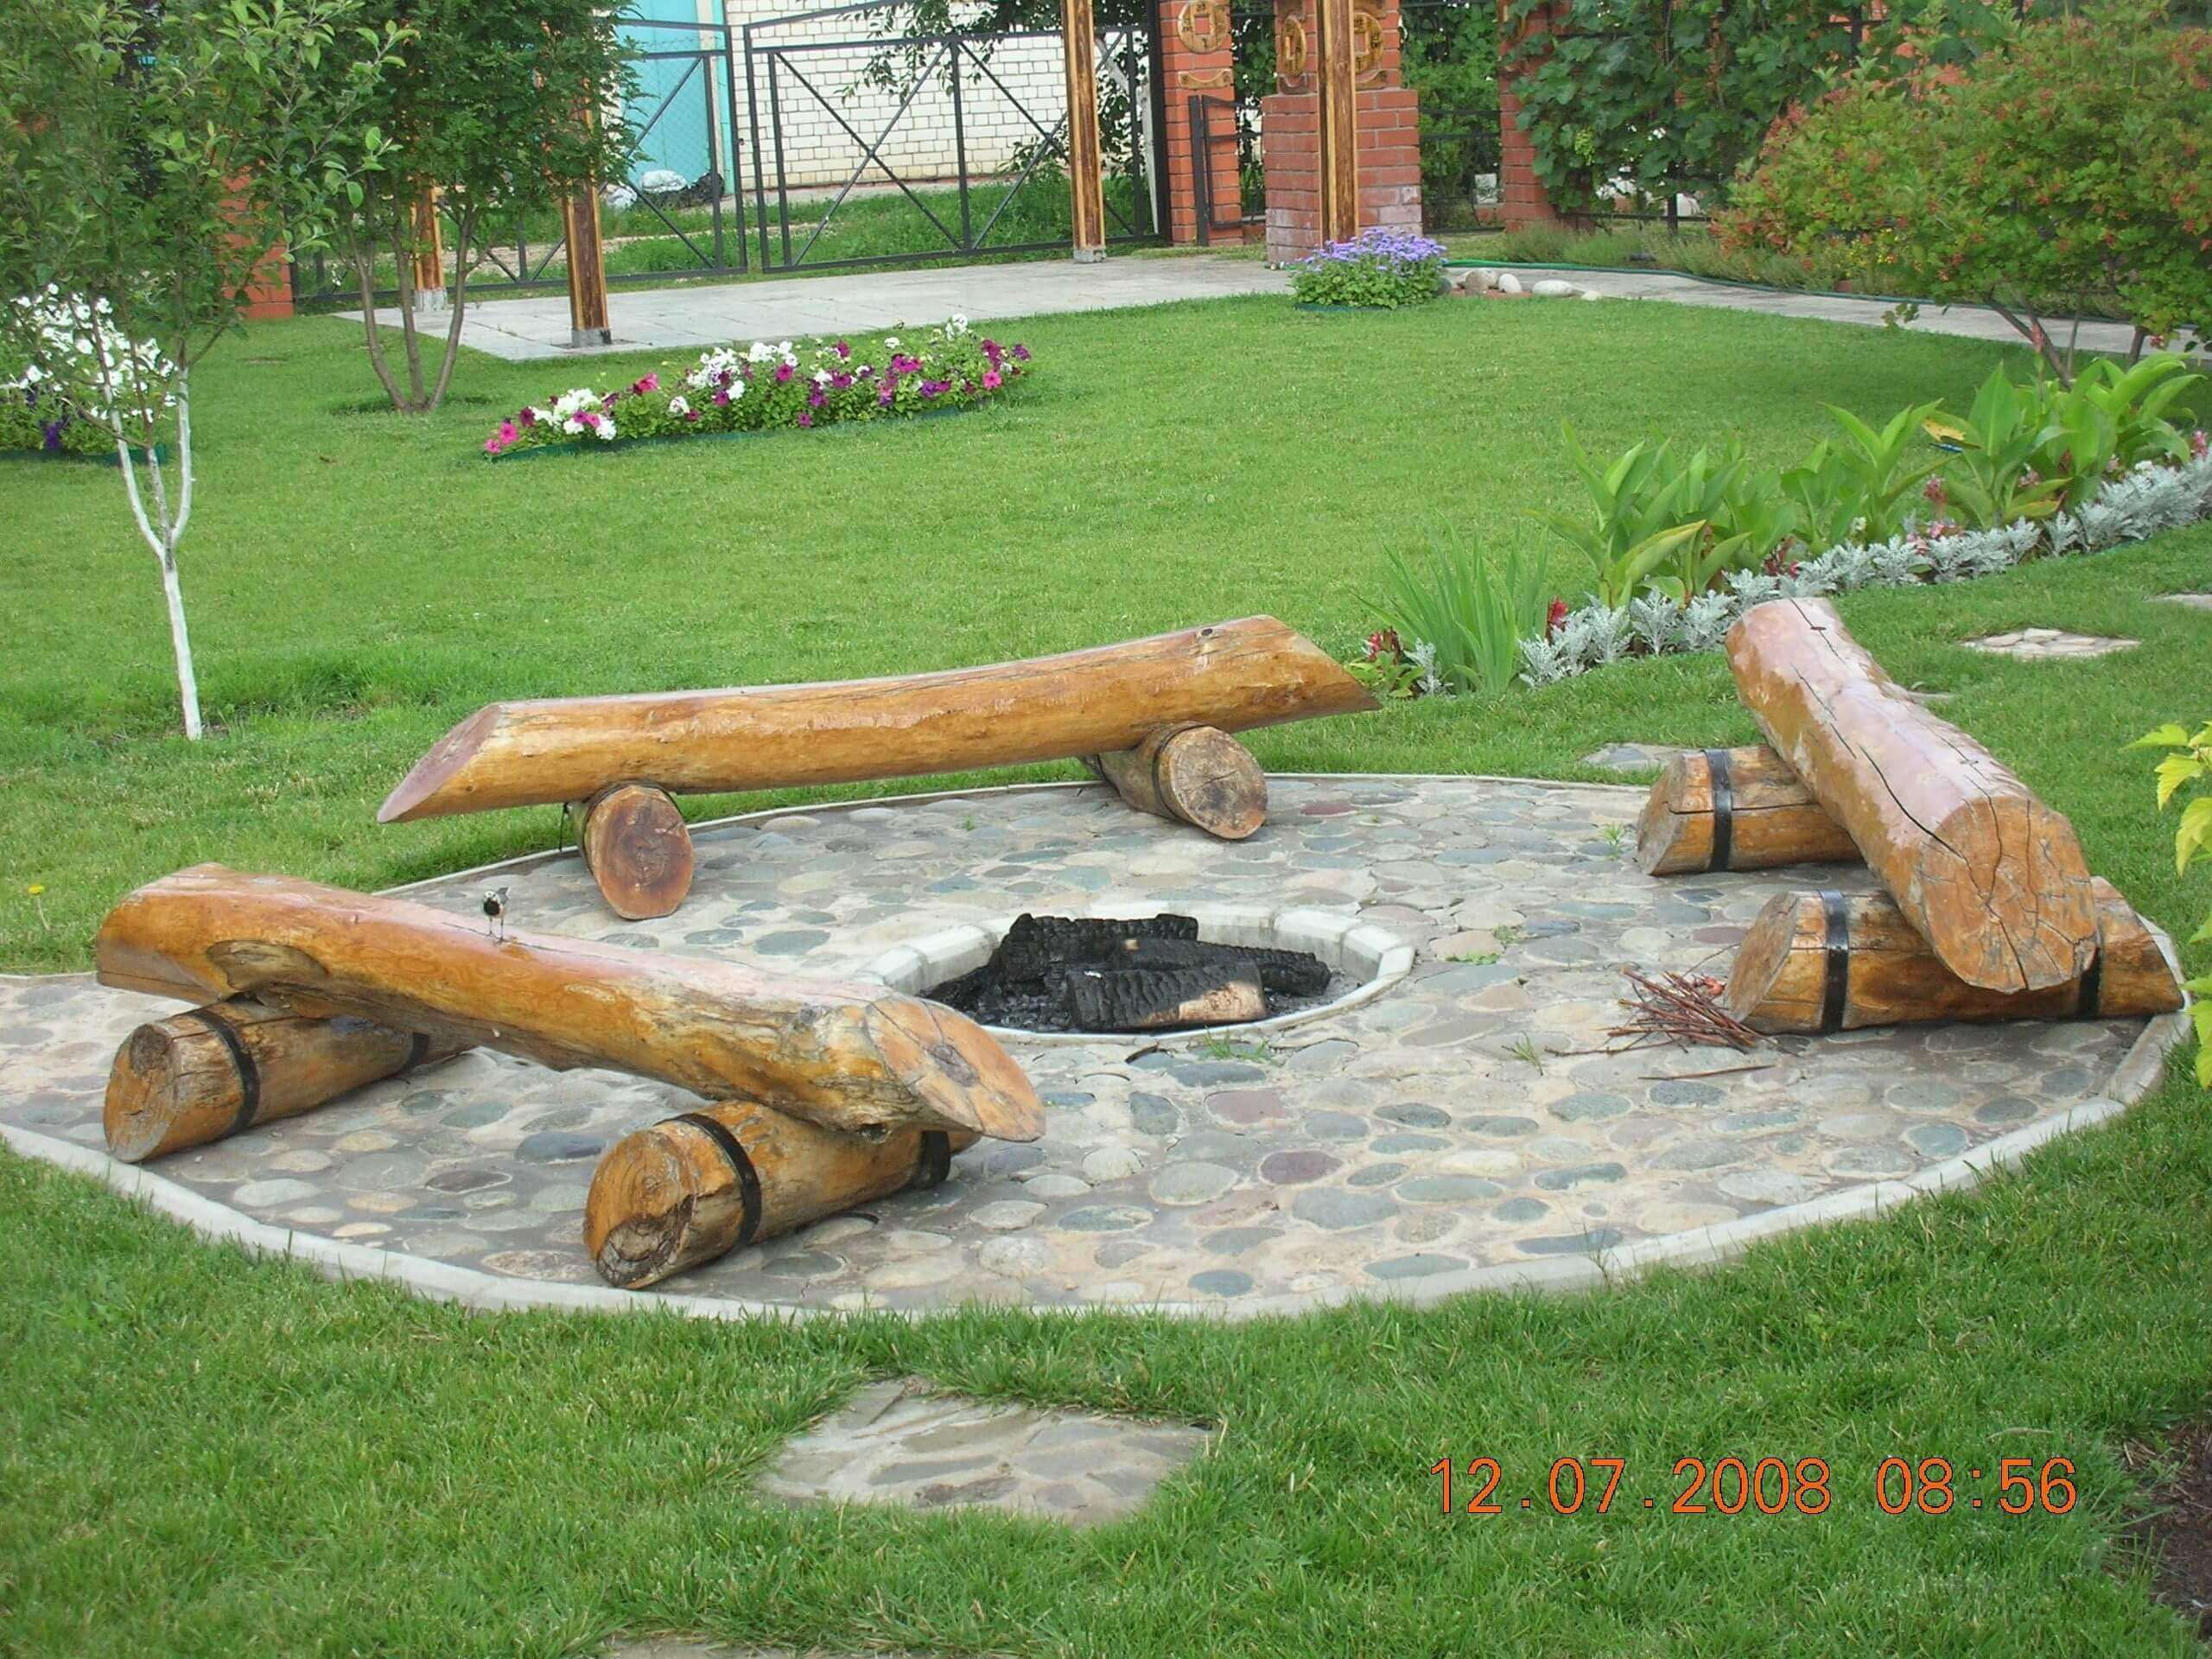 Log Benches Surrounding a Pit in Stone   Awesome Firepit Area Ideas For Your Outdoor Activities